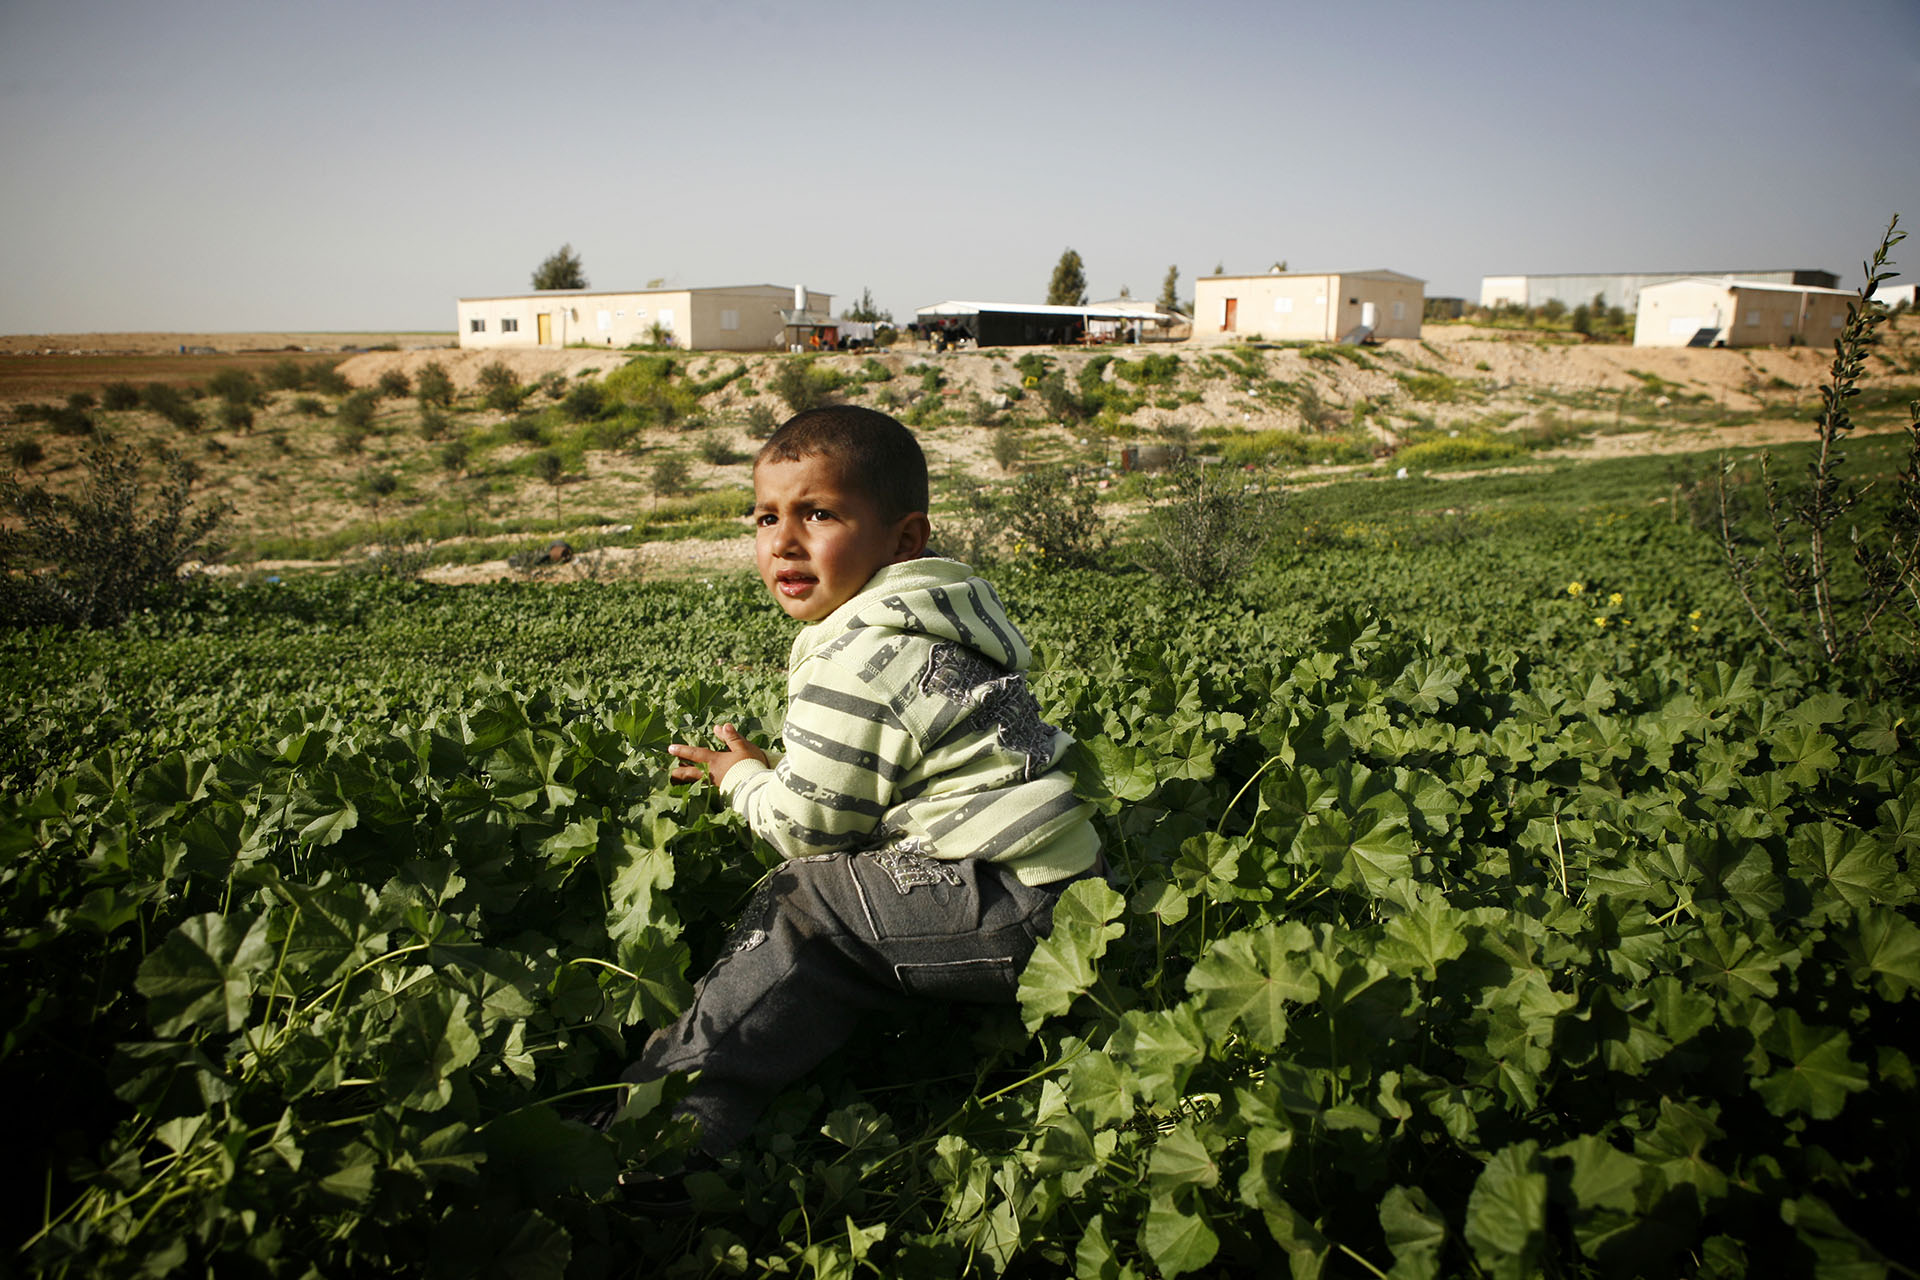 In winter, the usually monochrome landscape turns green. Mohammed plays among the plants. In the background, some of the homes making up Al Araqib, February 2010